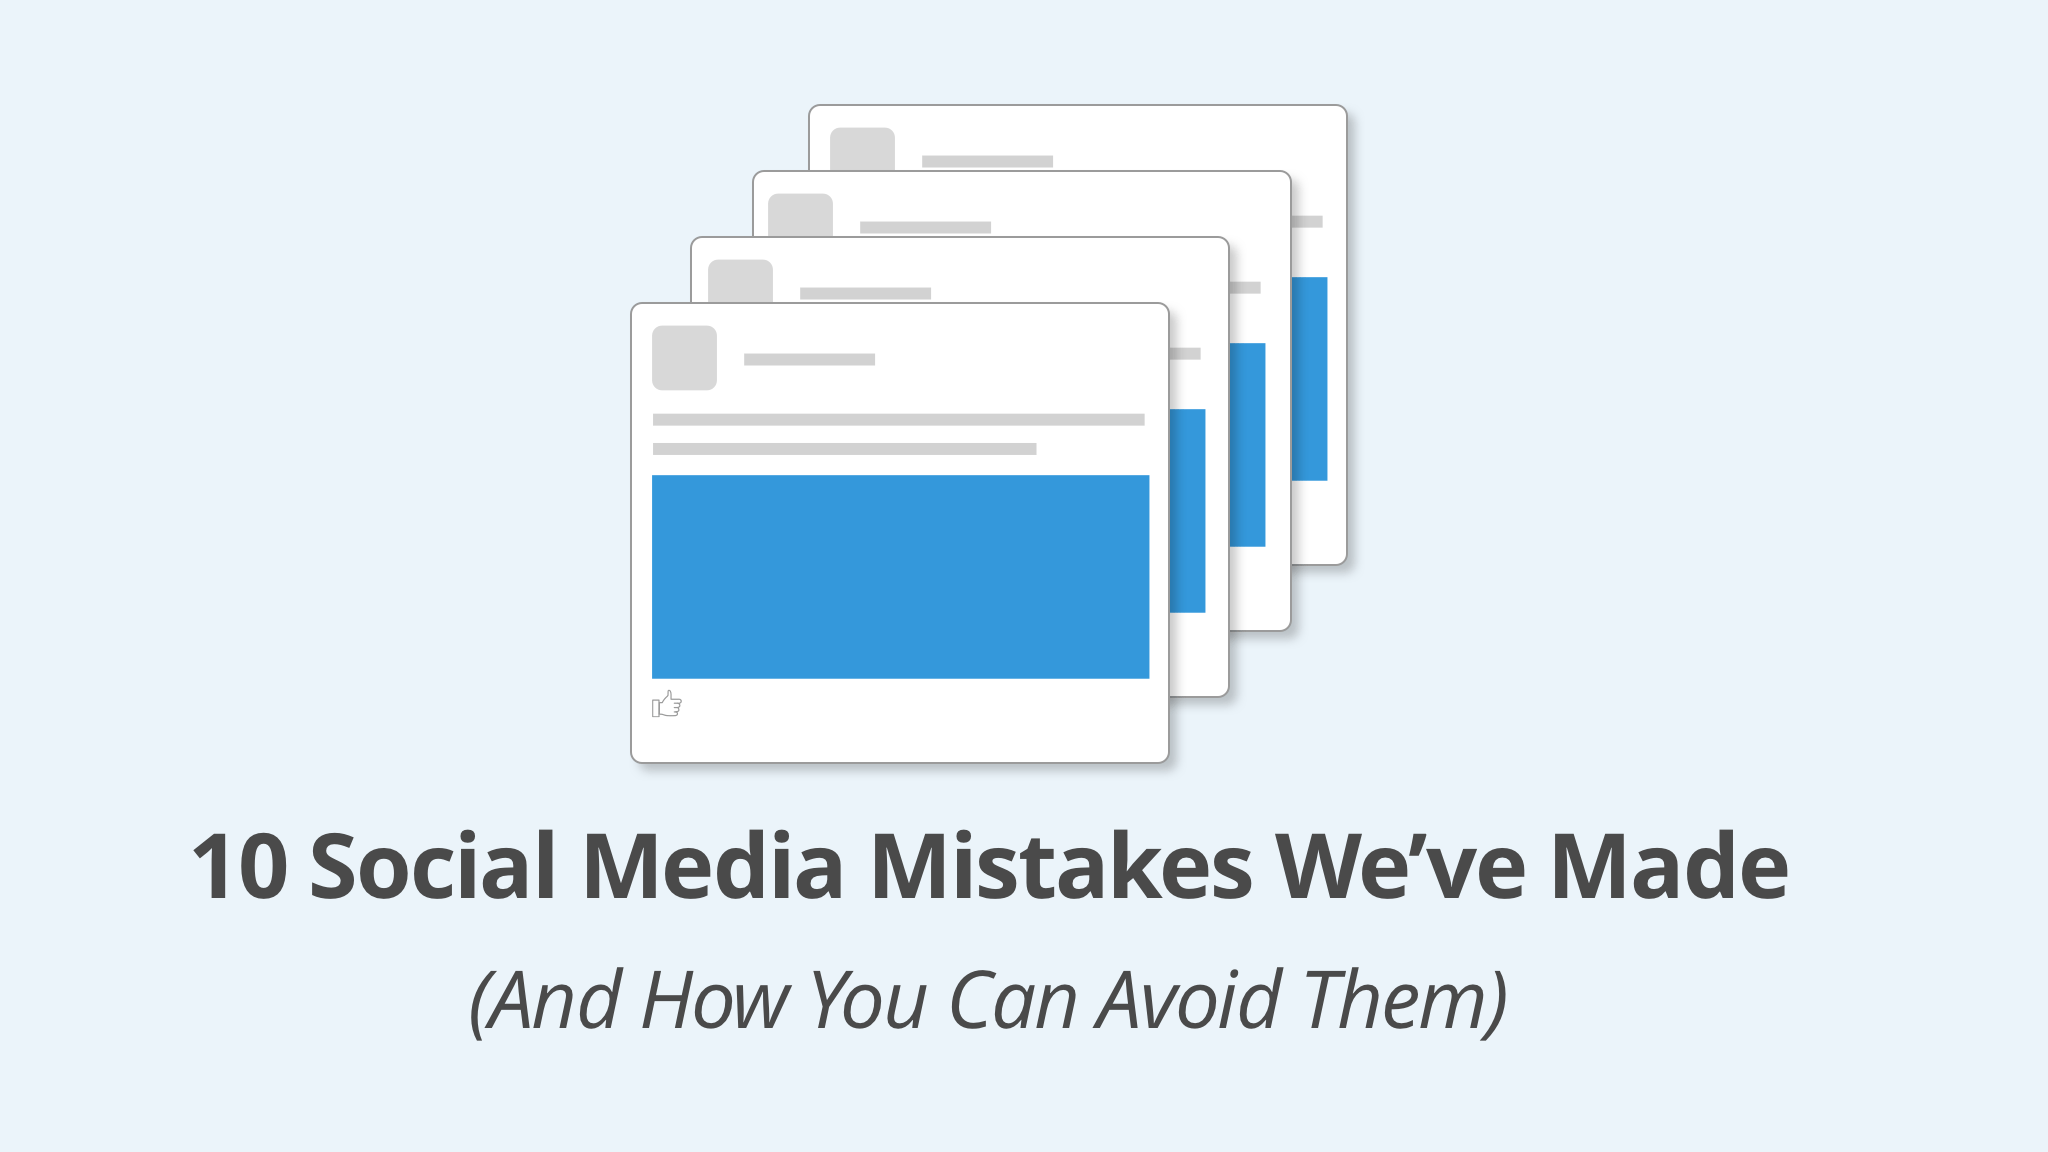 10 Social Media Mistakes We've Made (And How to Avoid Them)